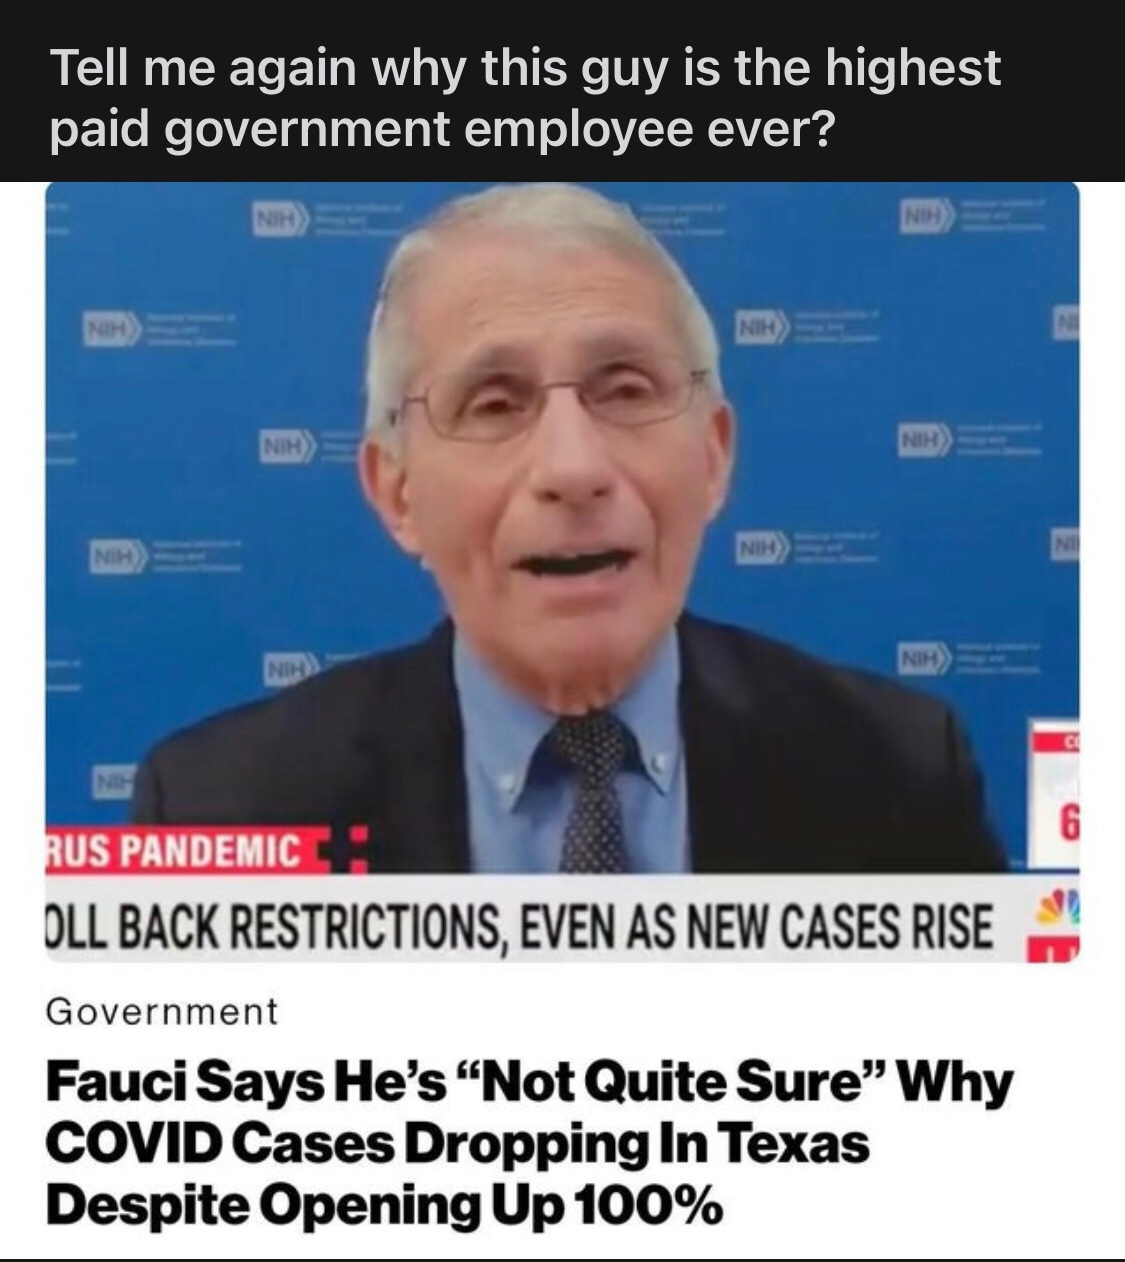 the year was 1980 and a curious fauci would skulk the halls of many american gay bars in search of promiscuous homosexual men. true story - meme